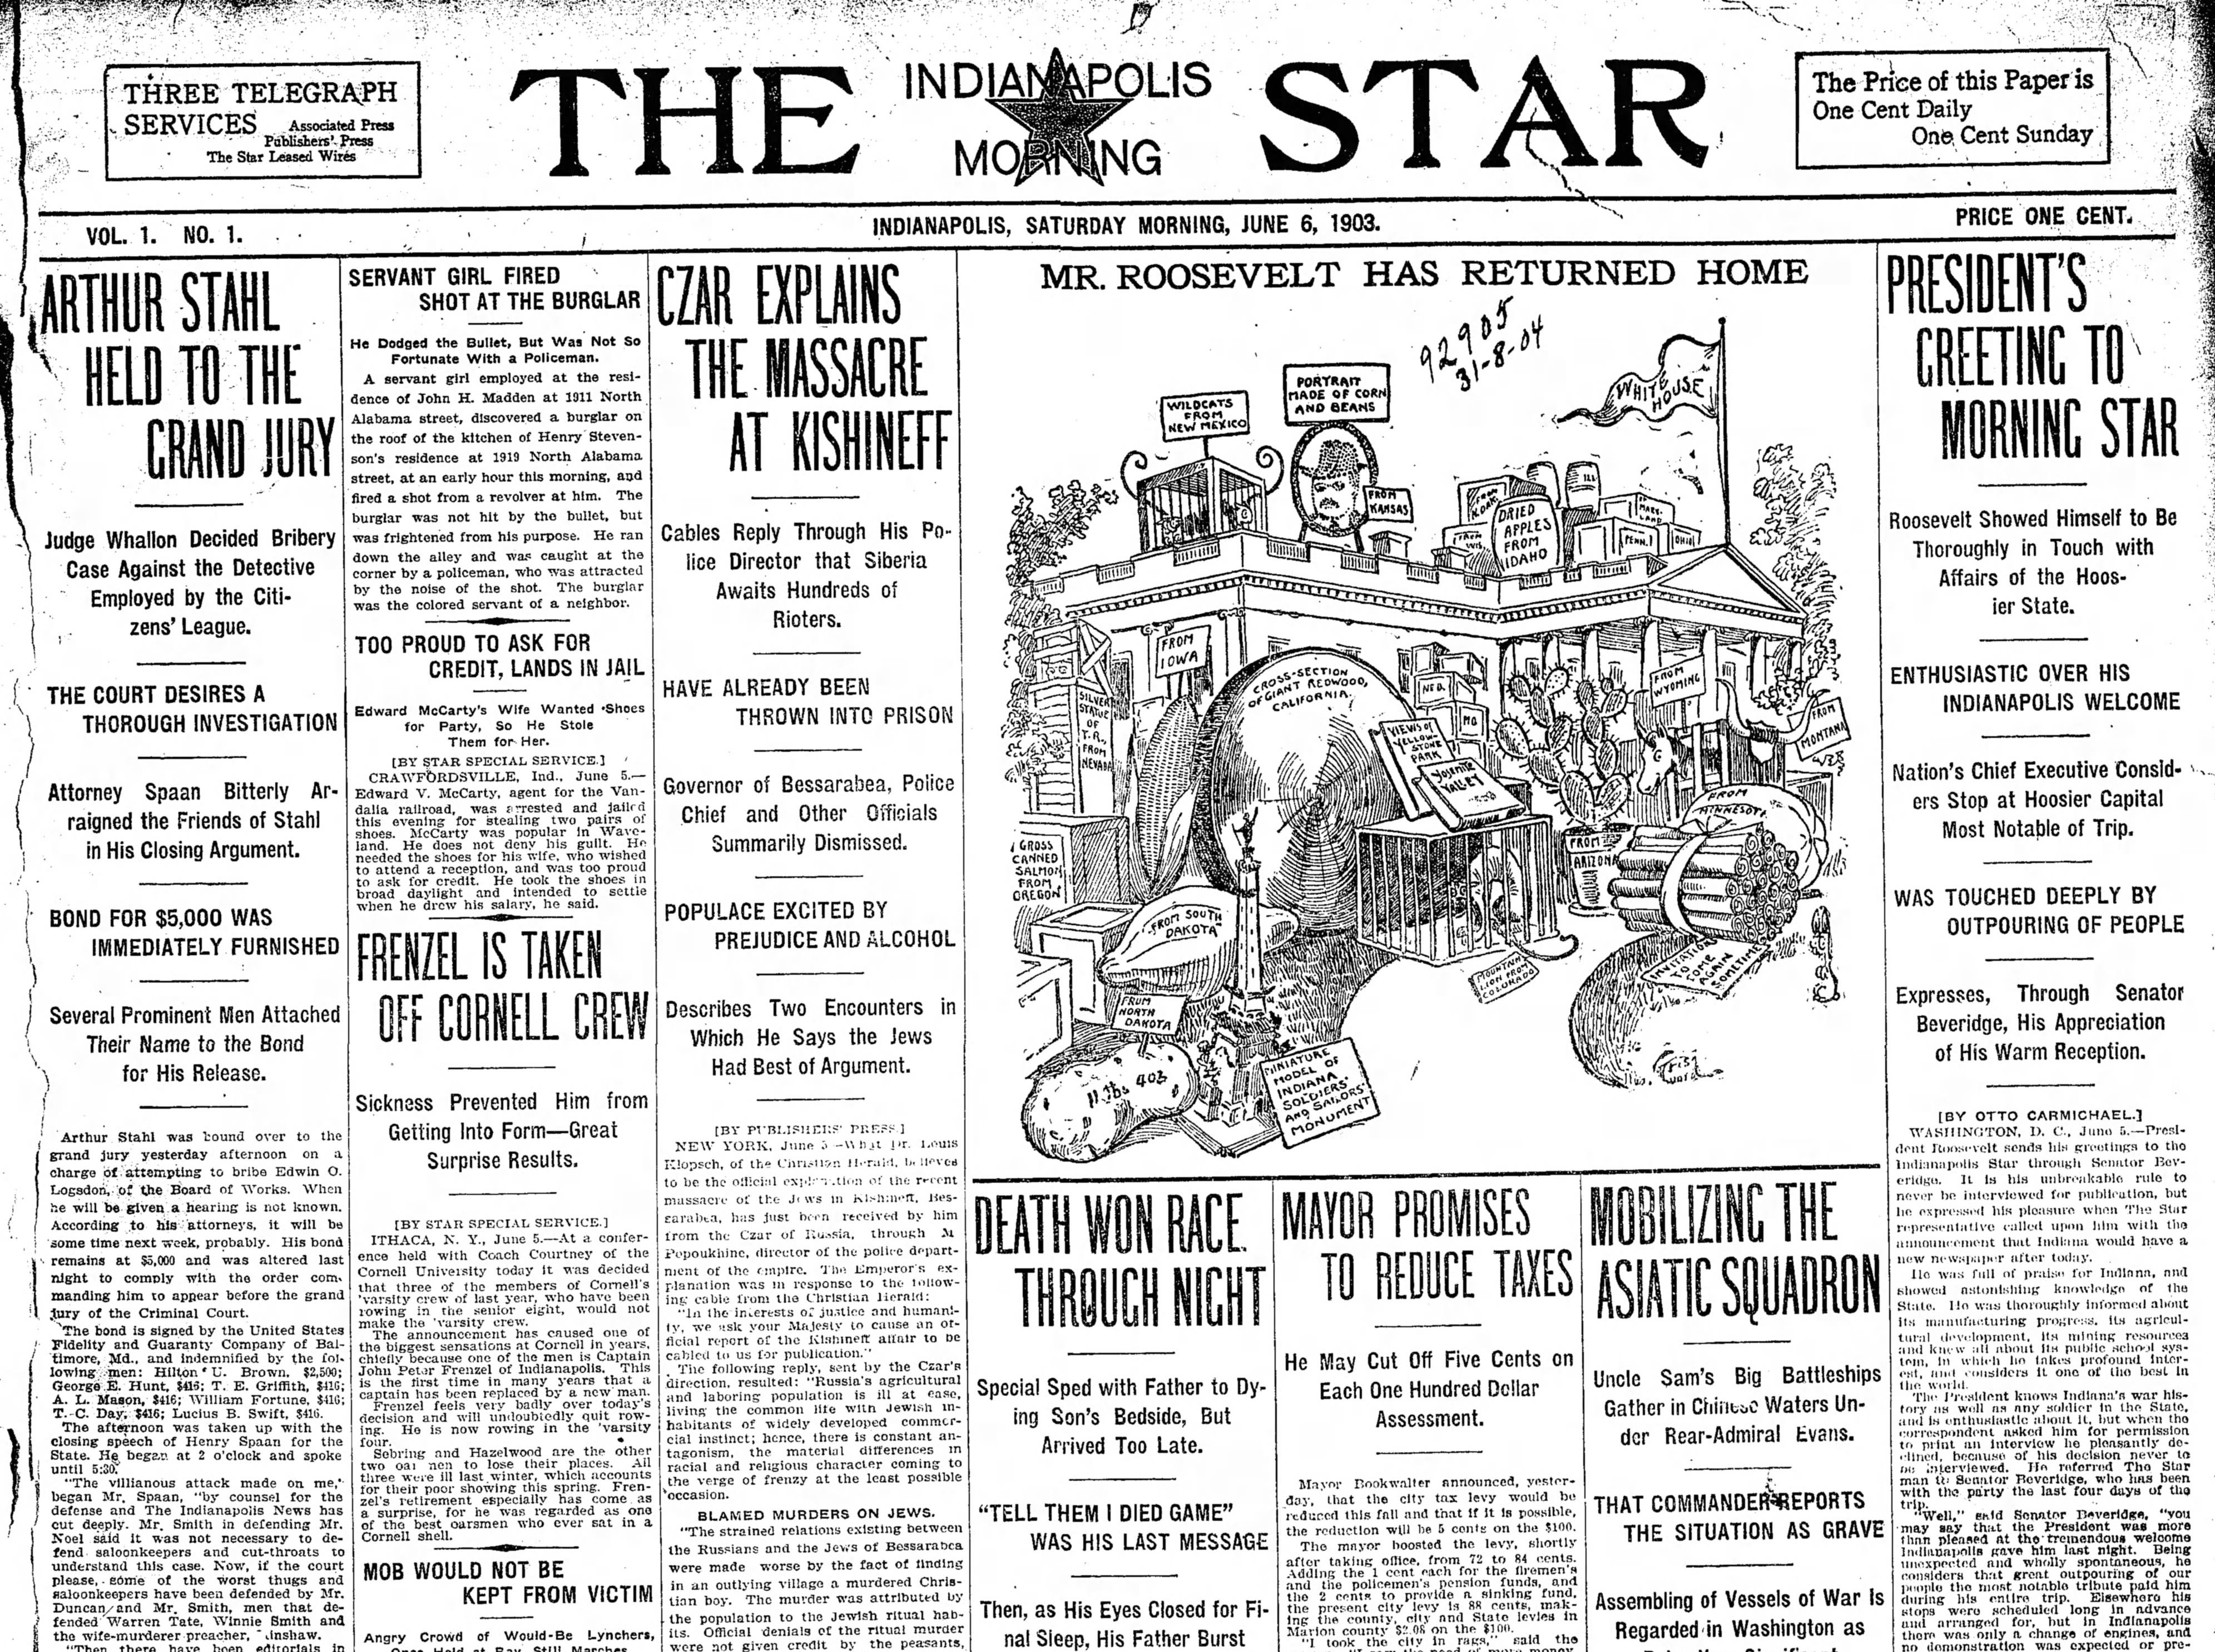 June 6, 1903 - first edition of The Indianapolis Star